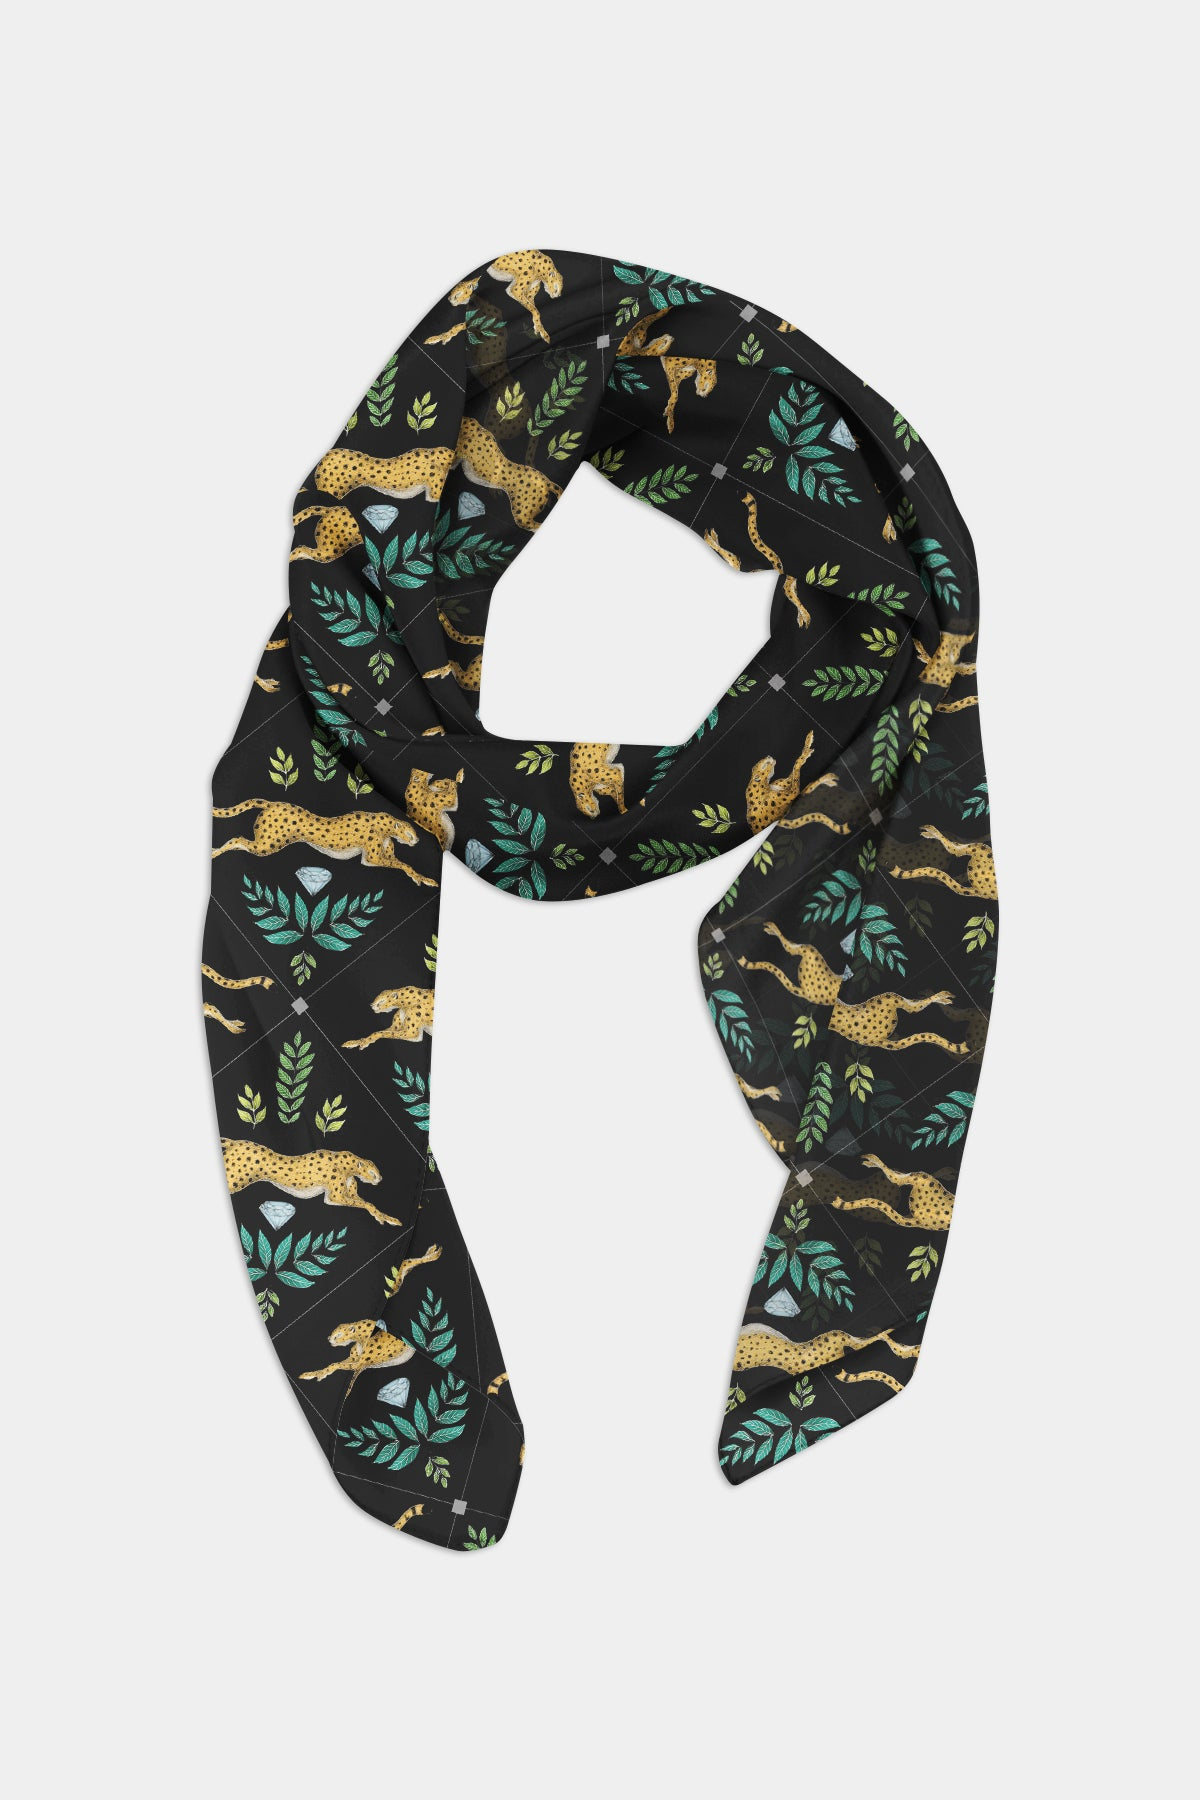 Cheetah Pattern in Midnight Scarf - 100% Silk or Vegan Silk